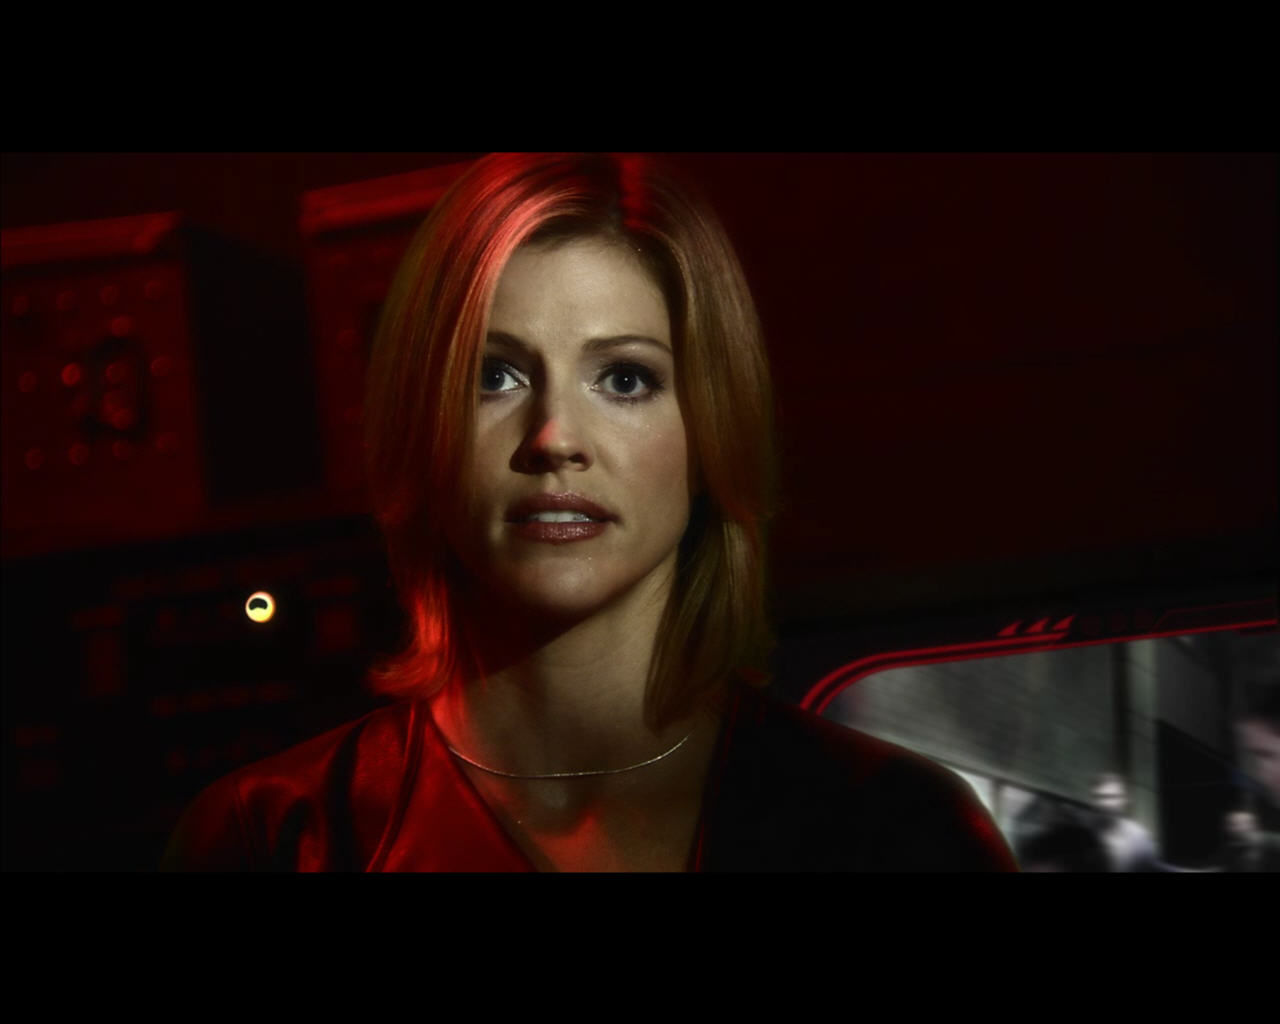 Command & Conquer 3: Tiberium Wars Windows Tricia Helfer as General Kilian Quatar